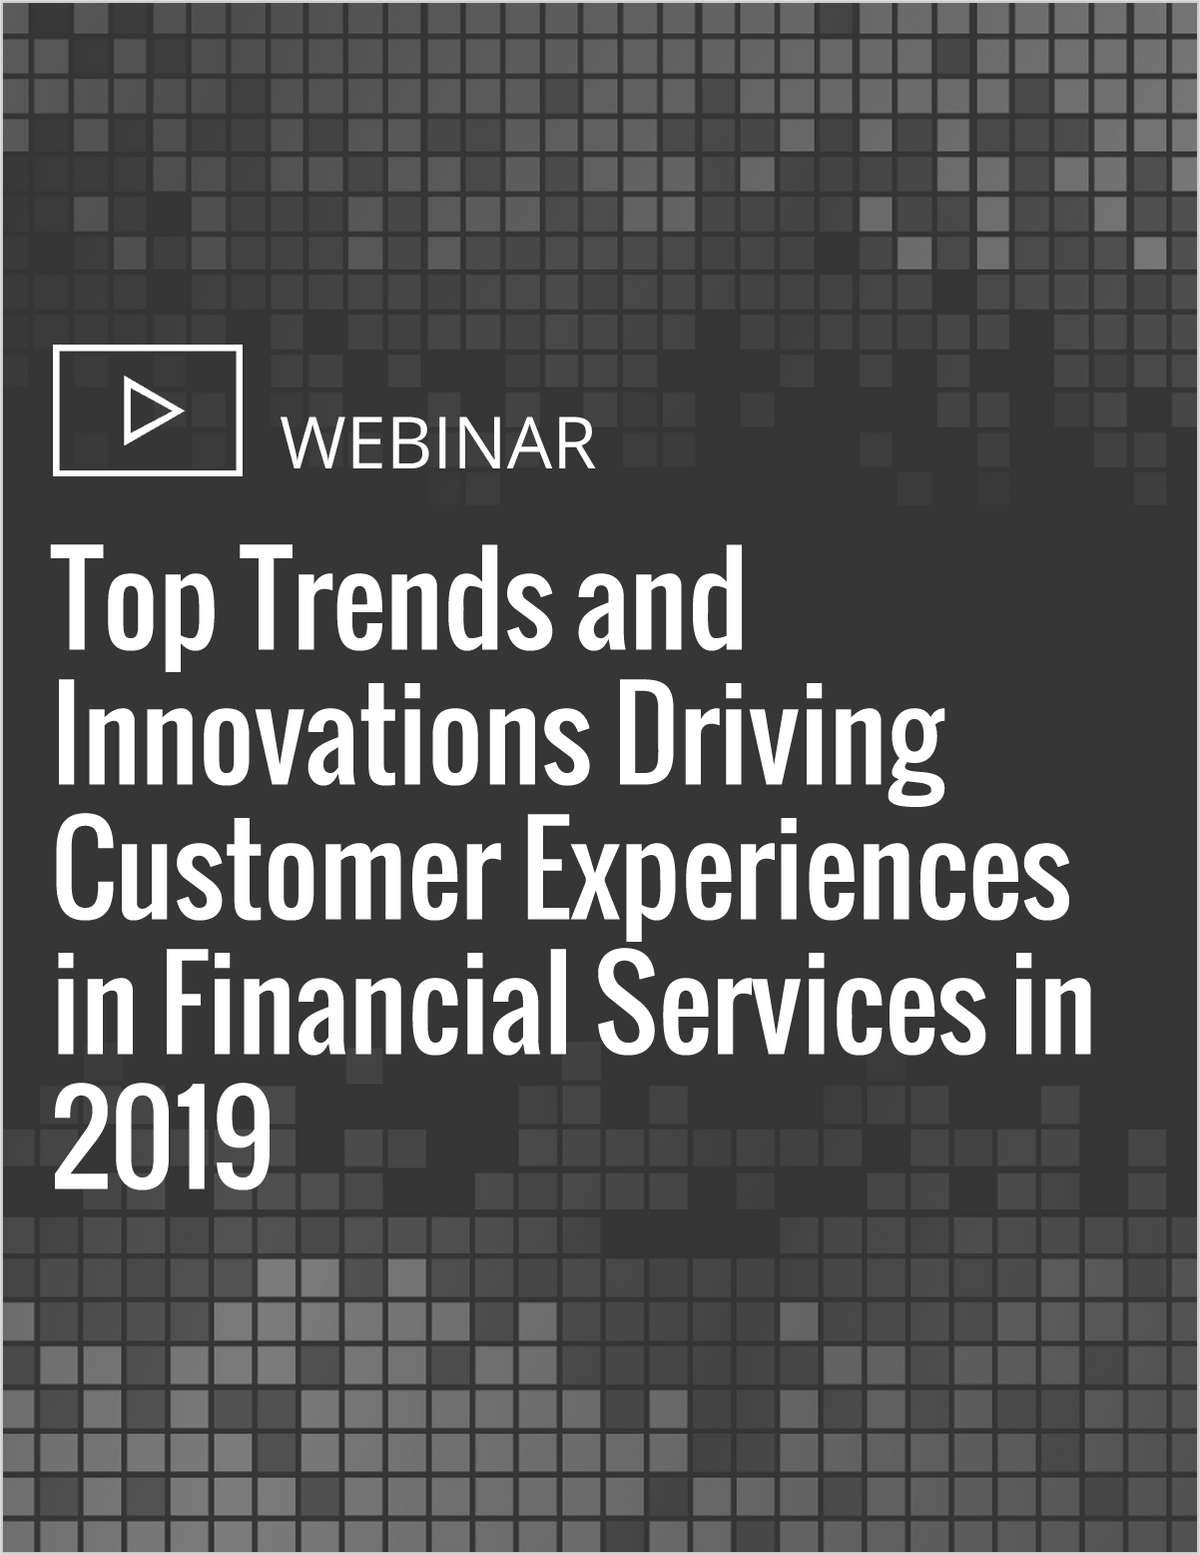 Top Trends and Innovations Driving Customer Experiences in Financial Services in 2019